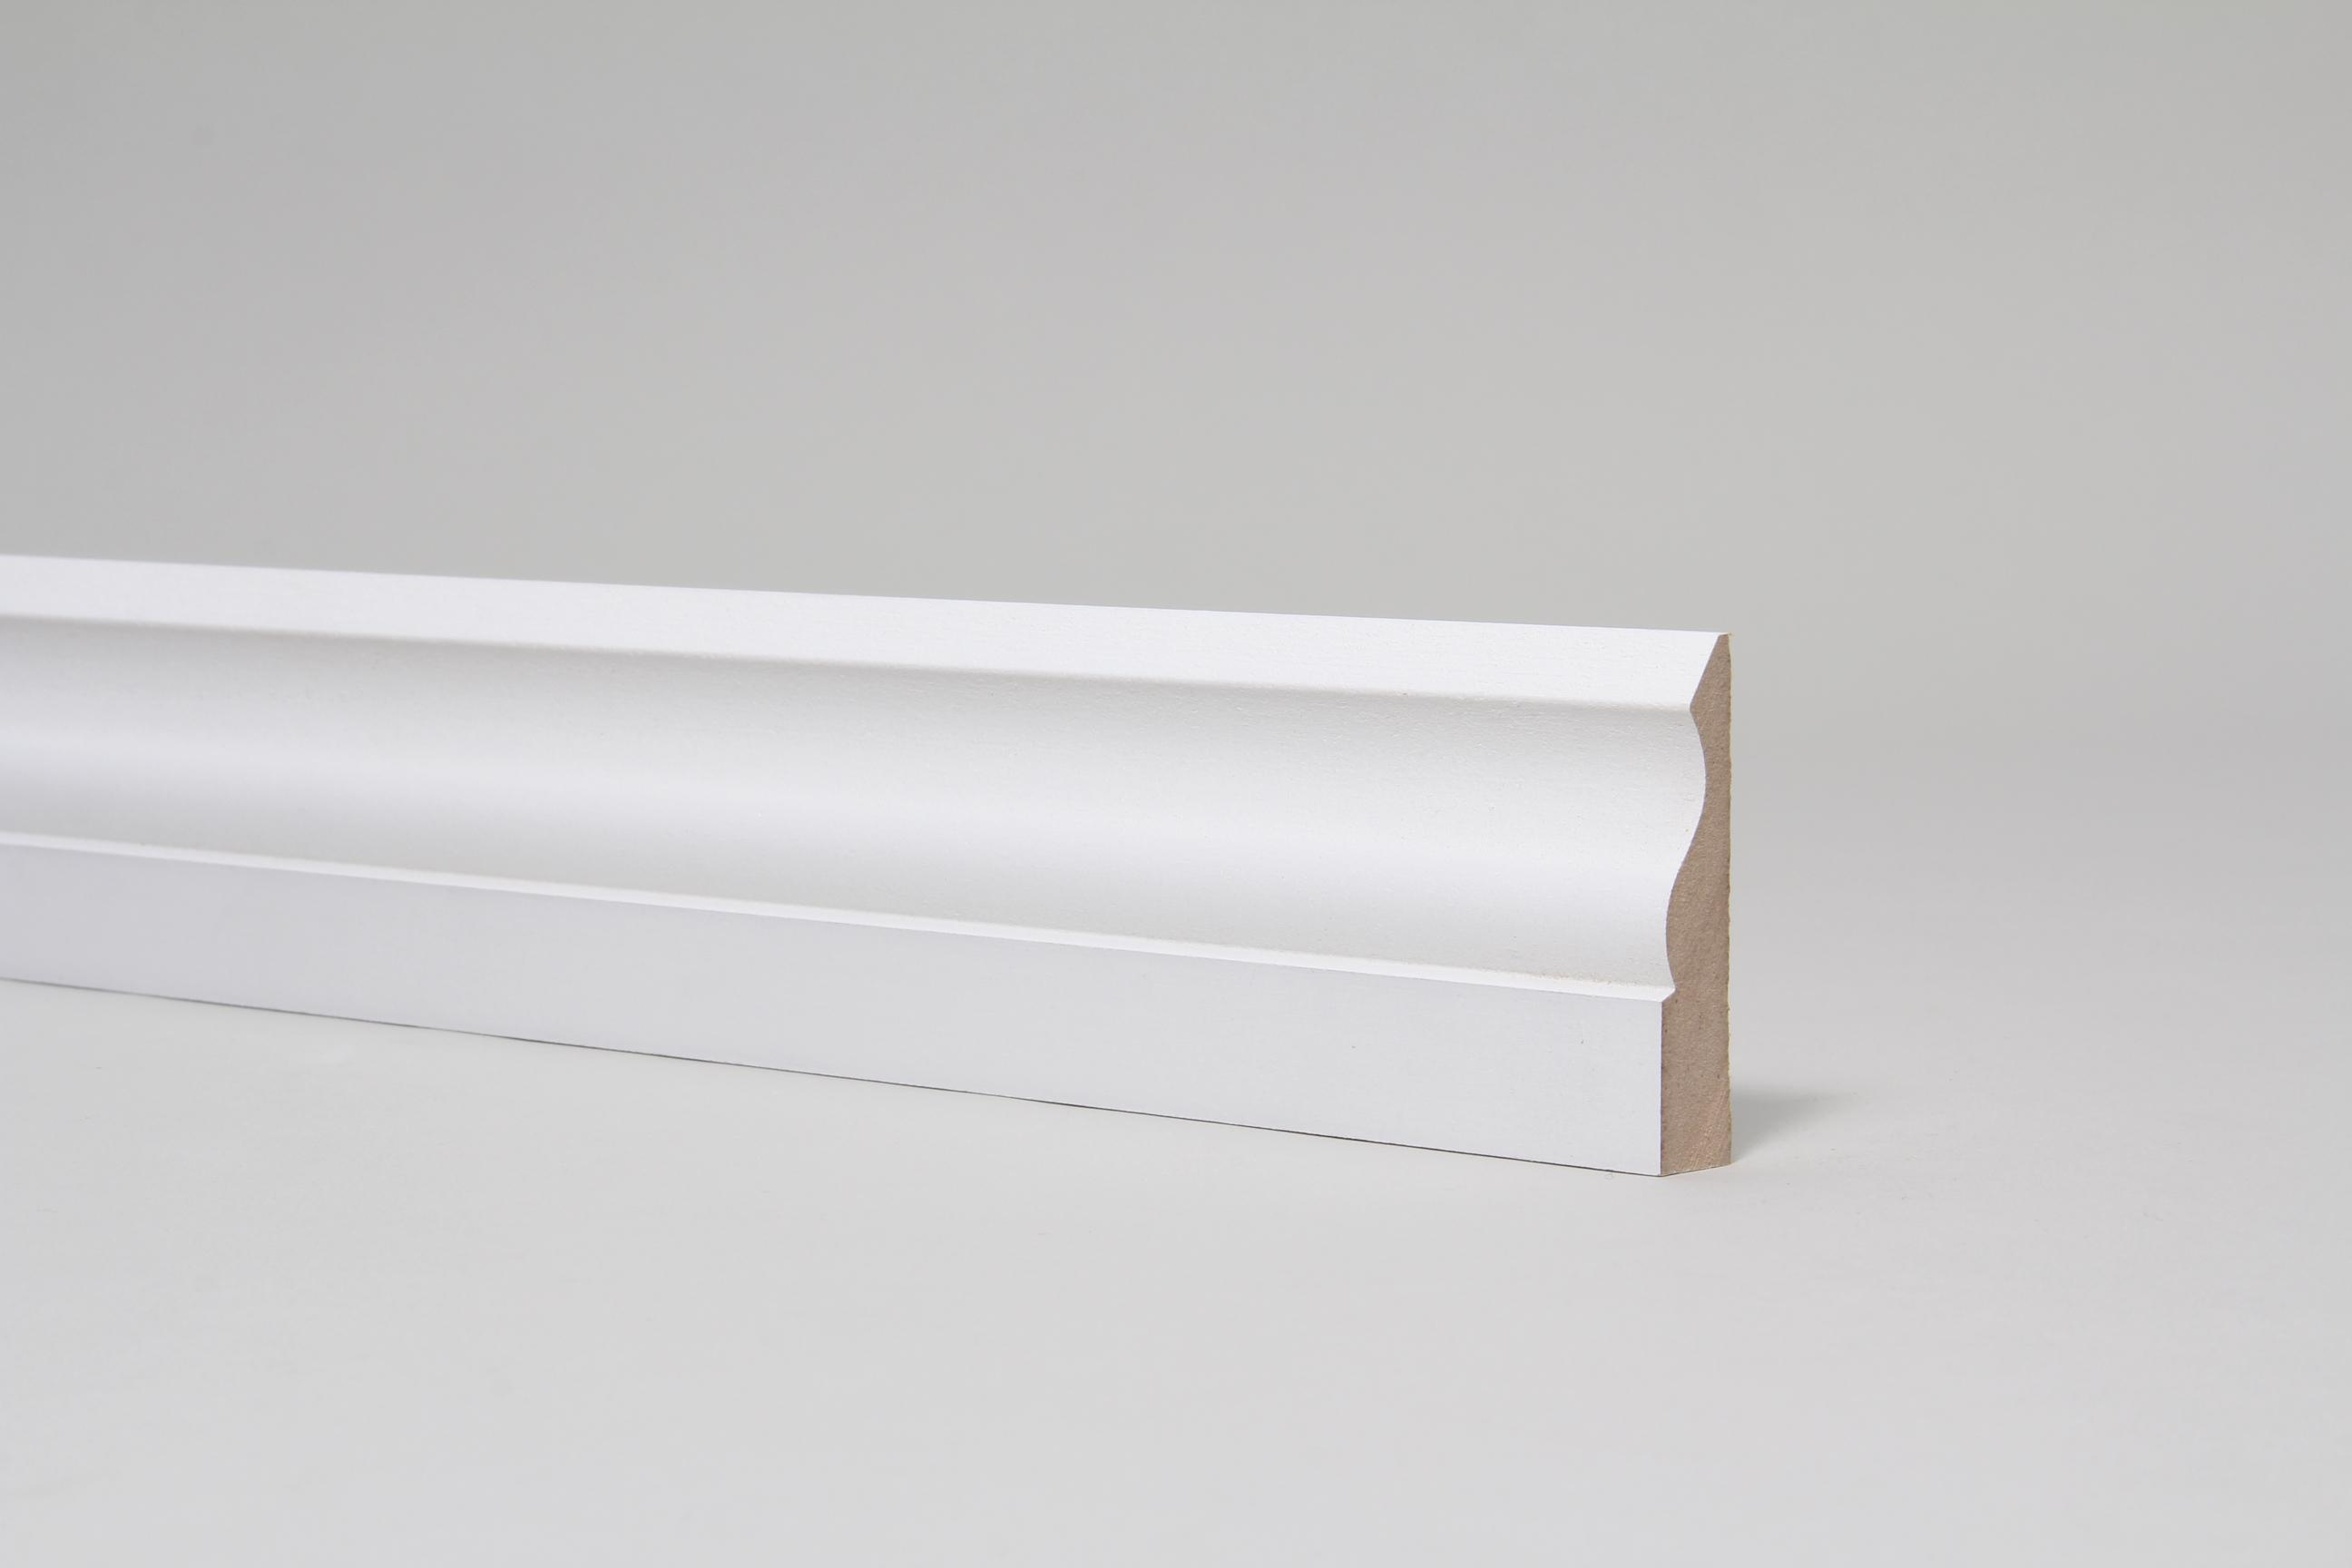 Ogee 15mm x 68mm x 4.4 Mtr  Primed